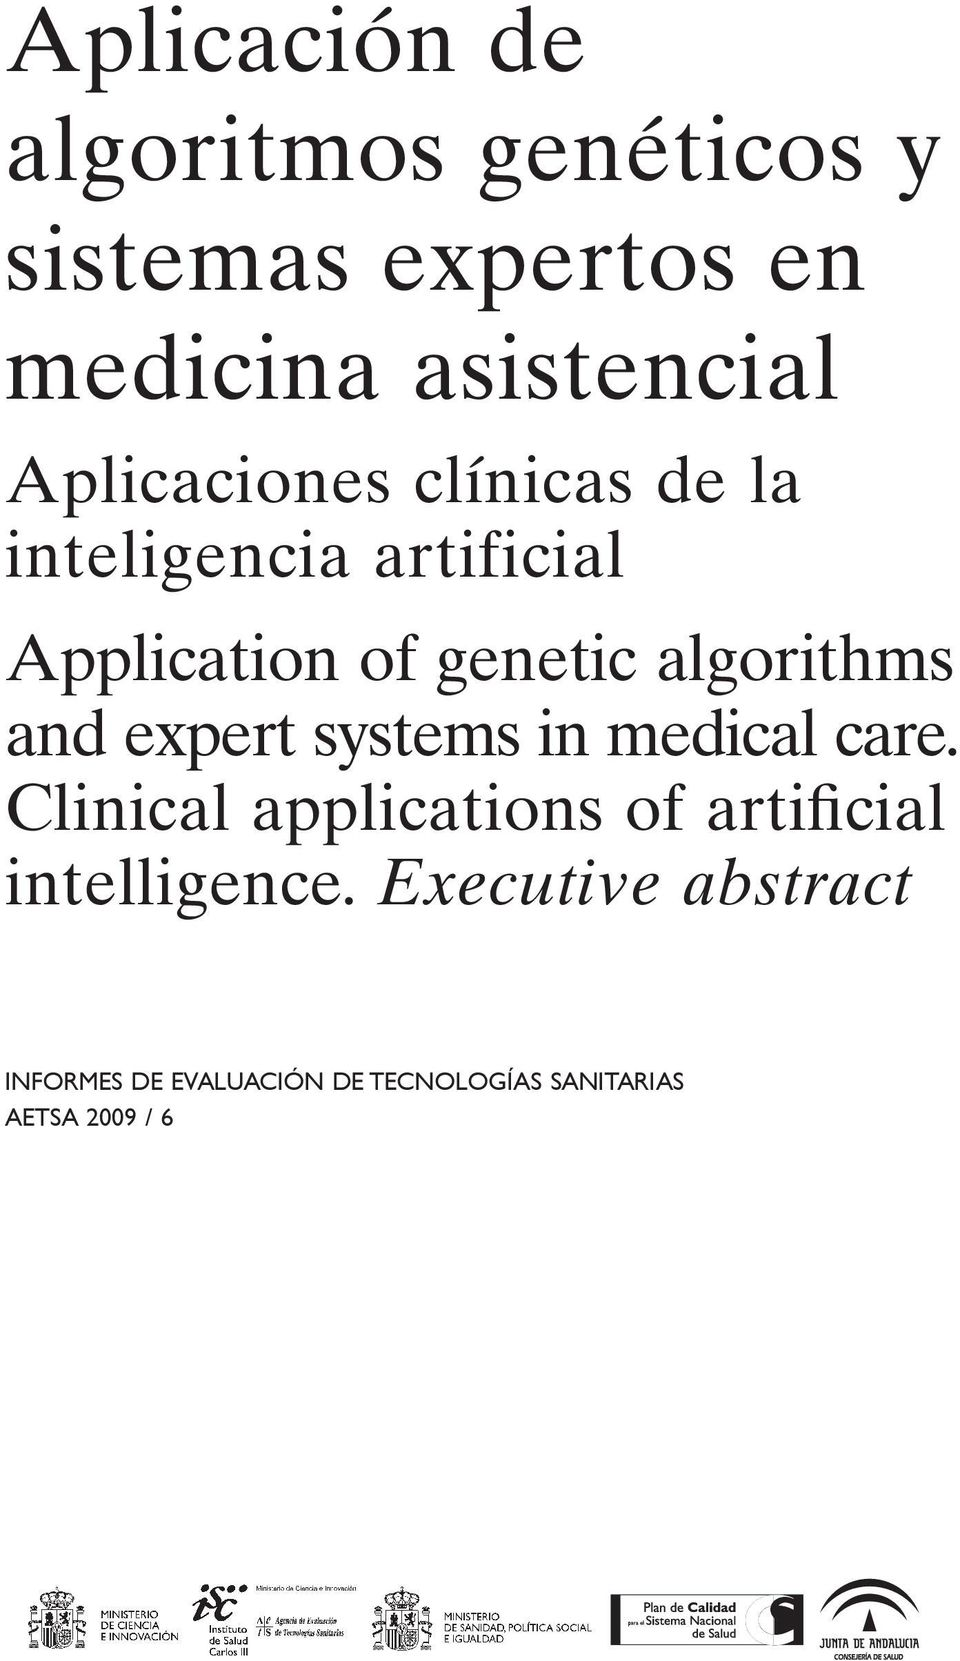 algorithms and expert systems in medical care.